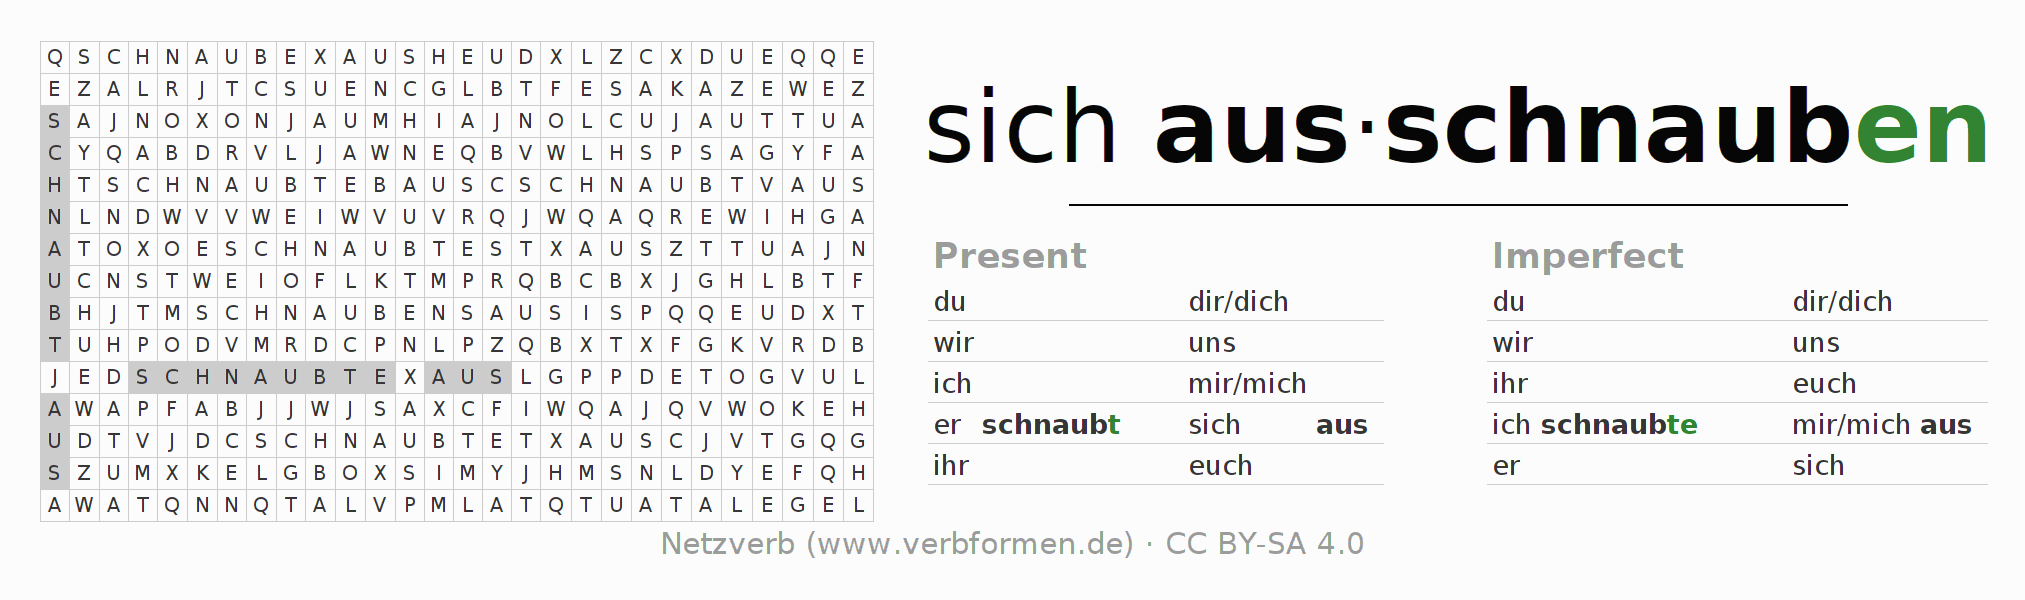 Word search puzzle for the conjugation of the verb sich ausschnauben (regelm)